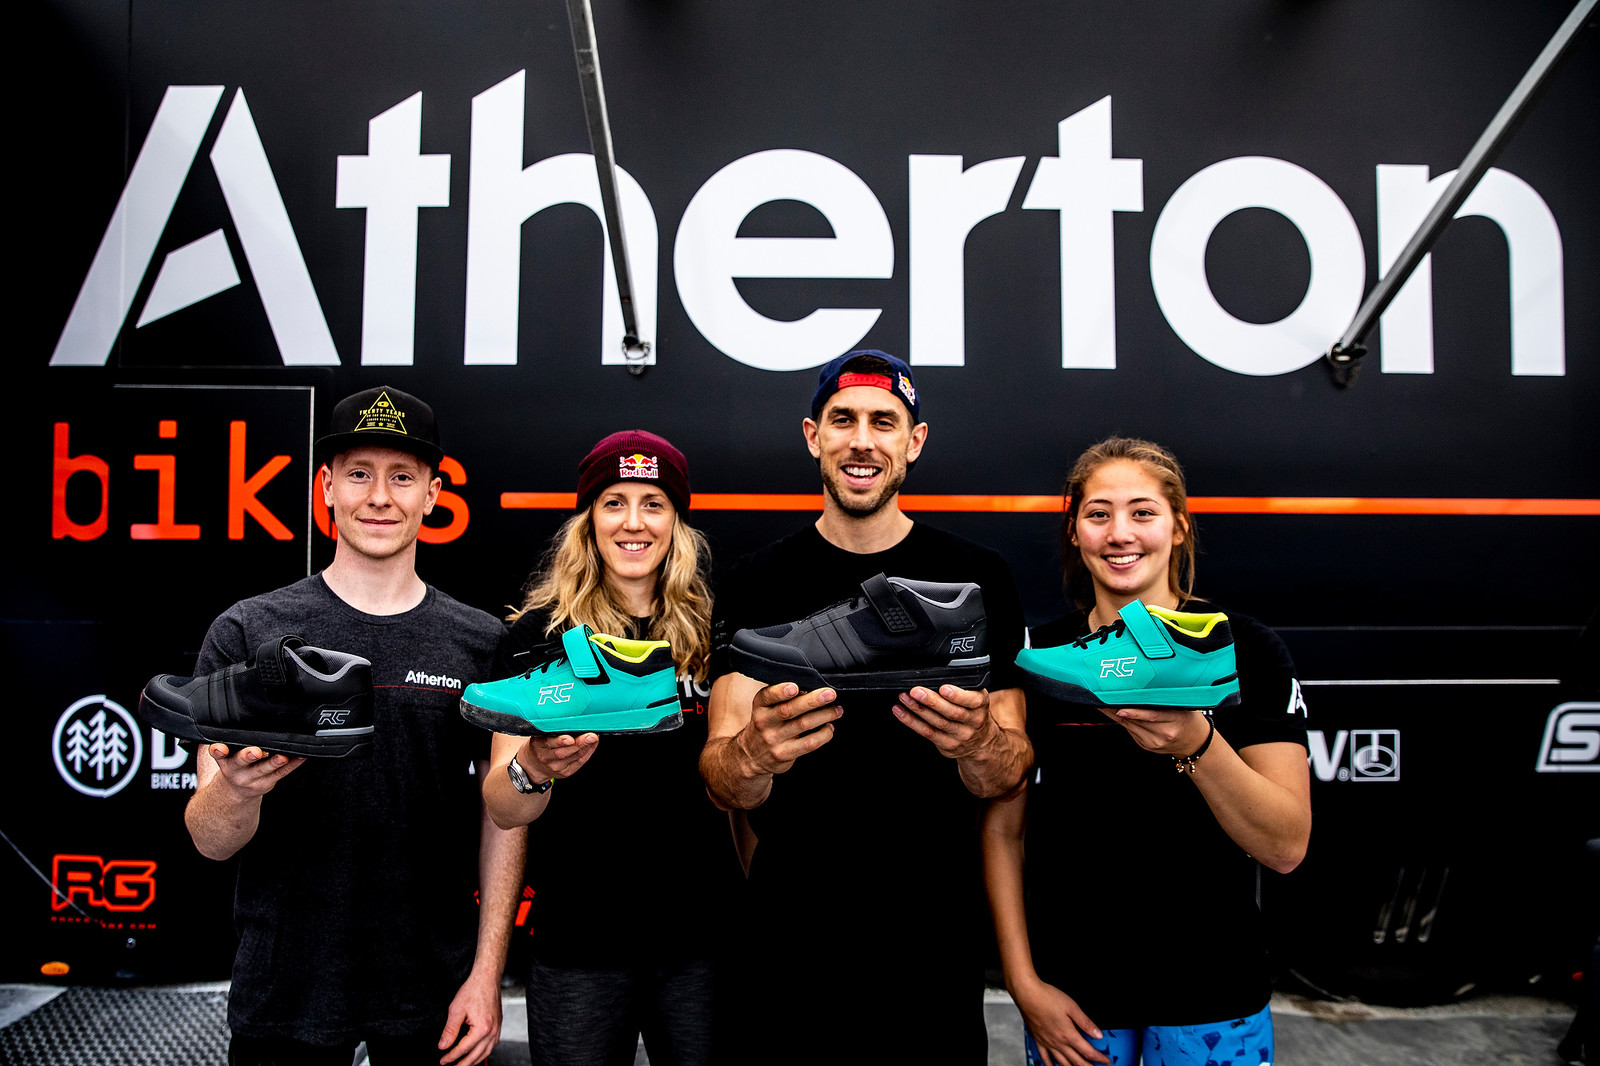 The Atherton Racing team with the Transition and Traverse.